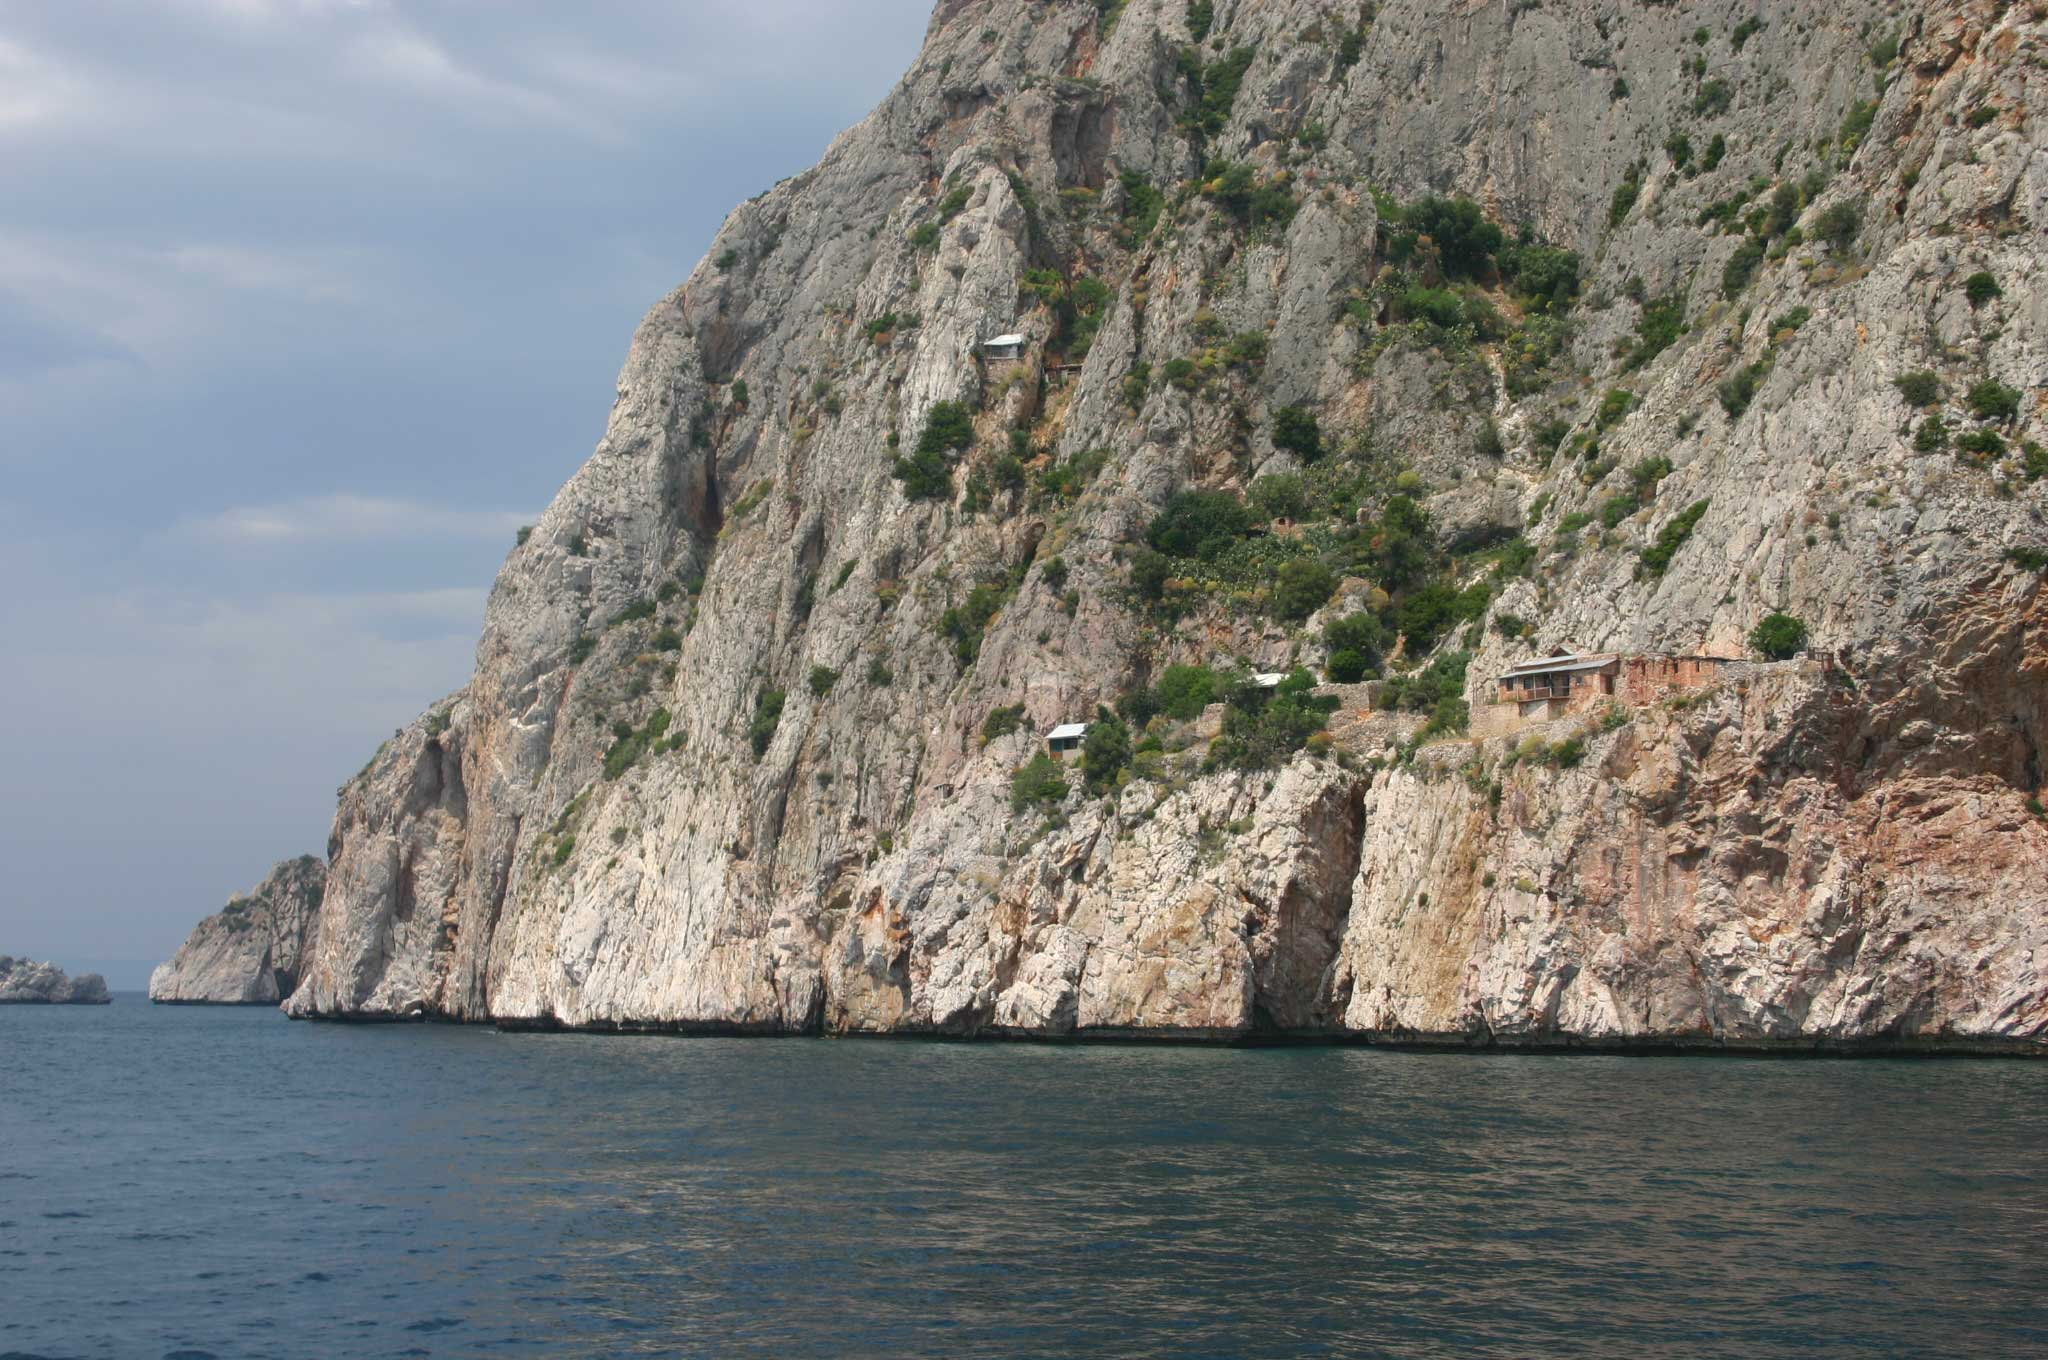 Mt Athos - South Coast From the Ferry - © William Mackesy